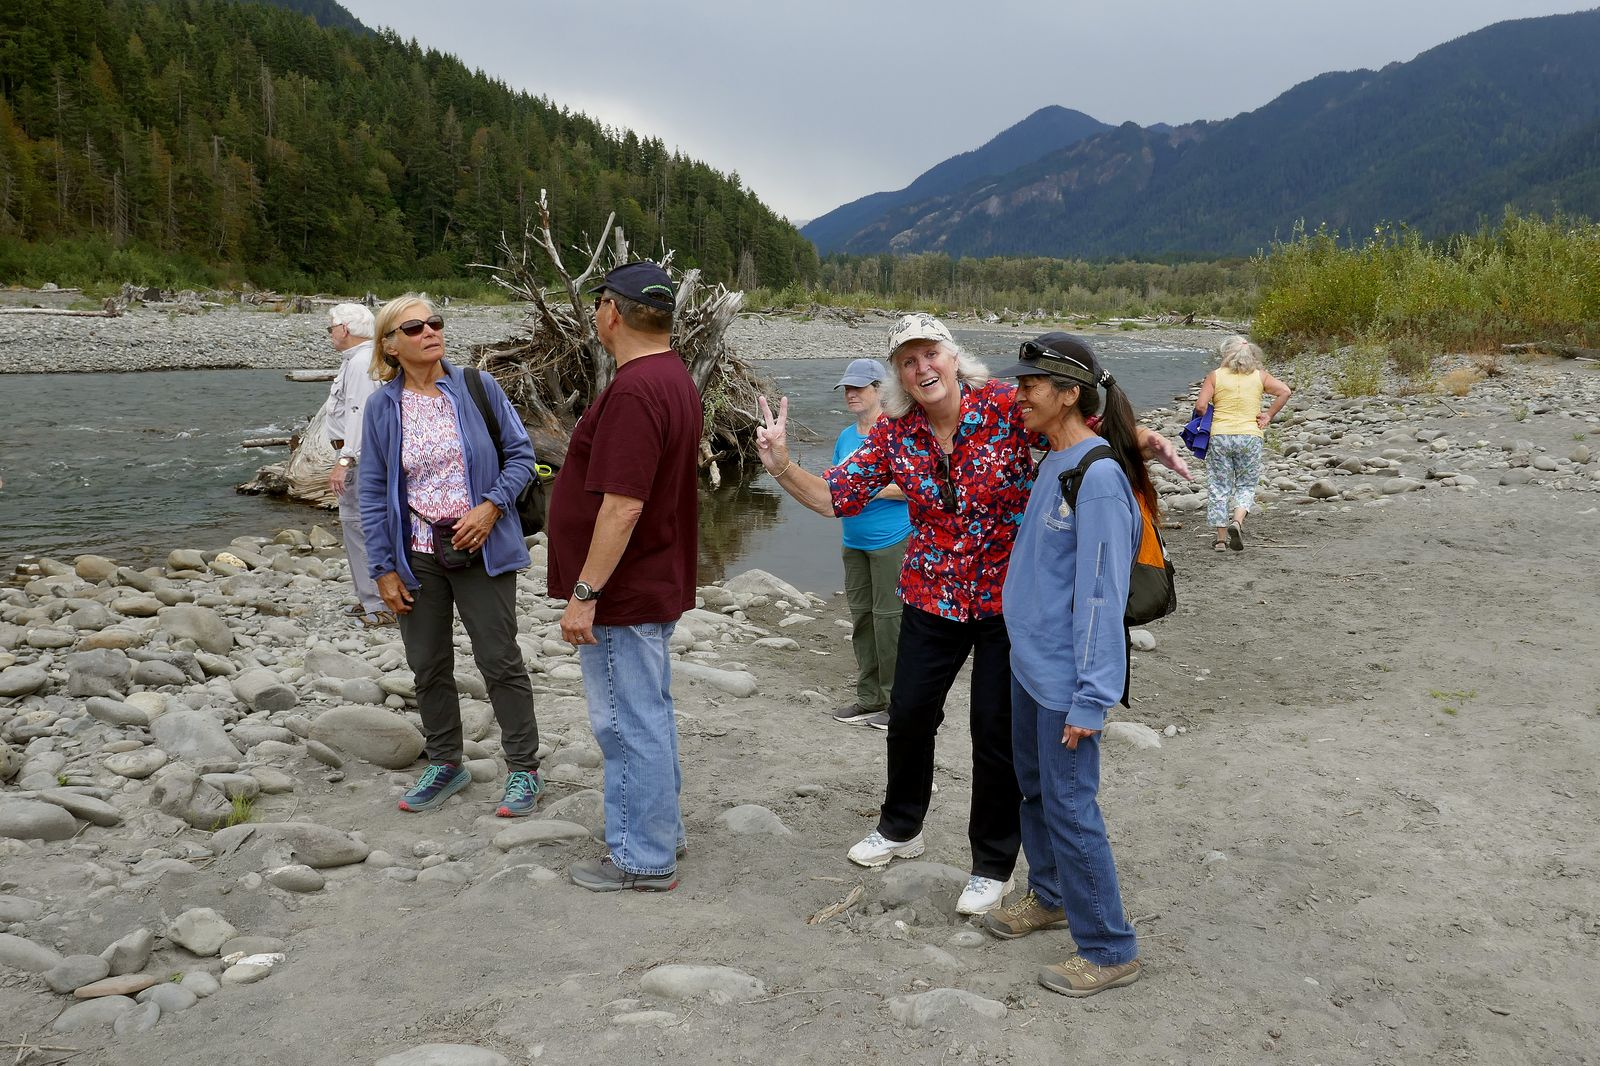 Louise and Sharlene find the Elwha River